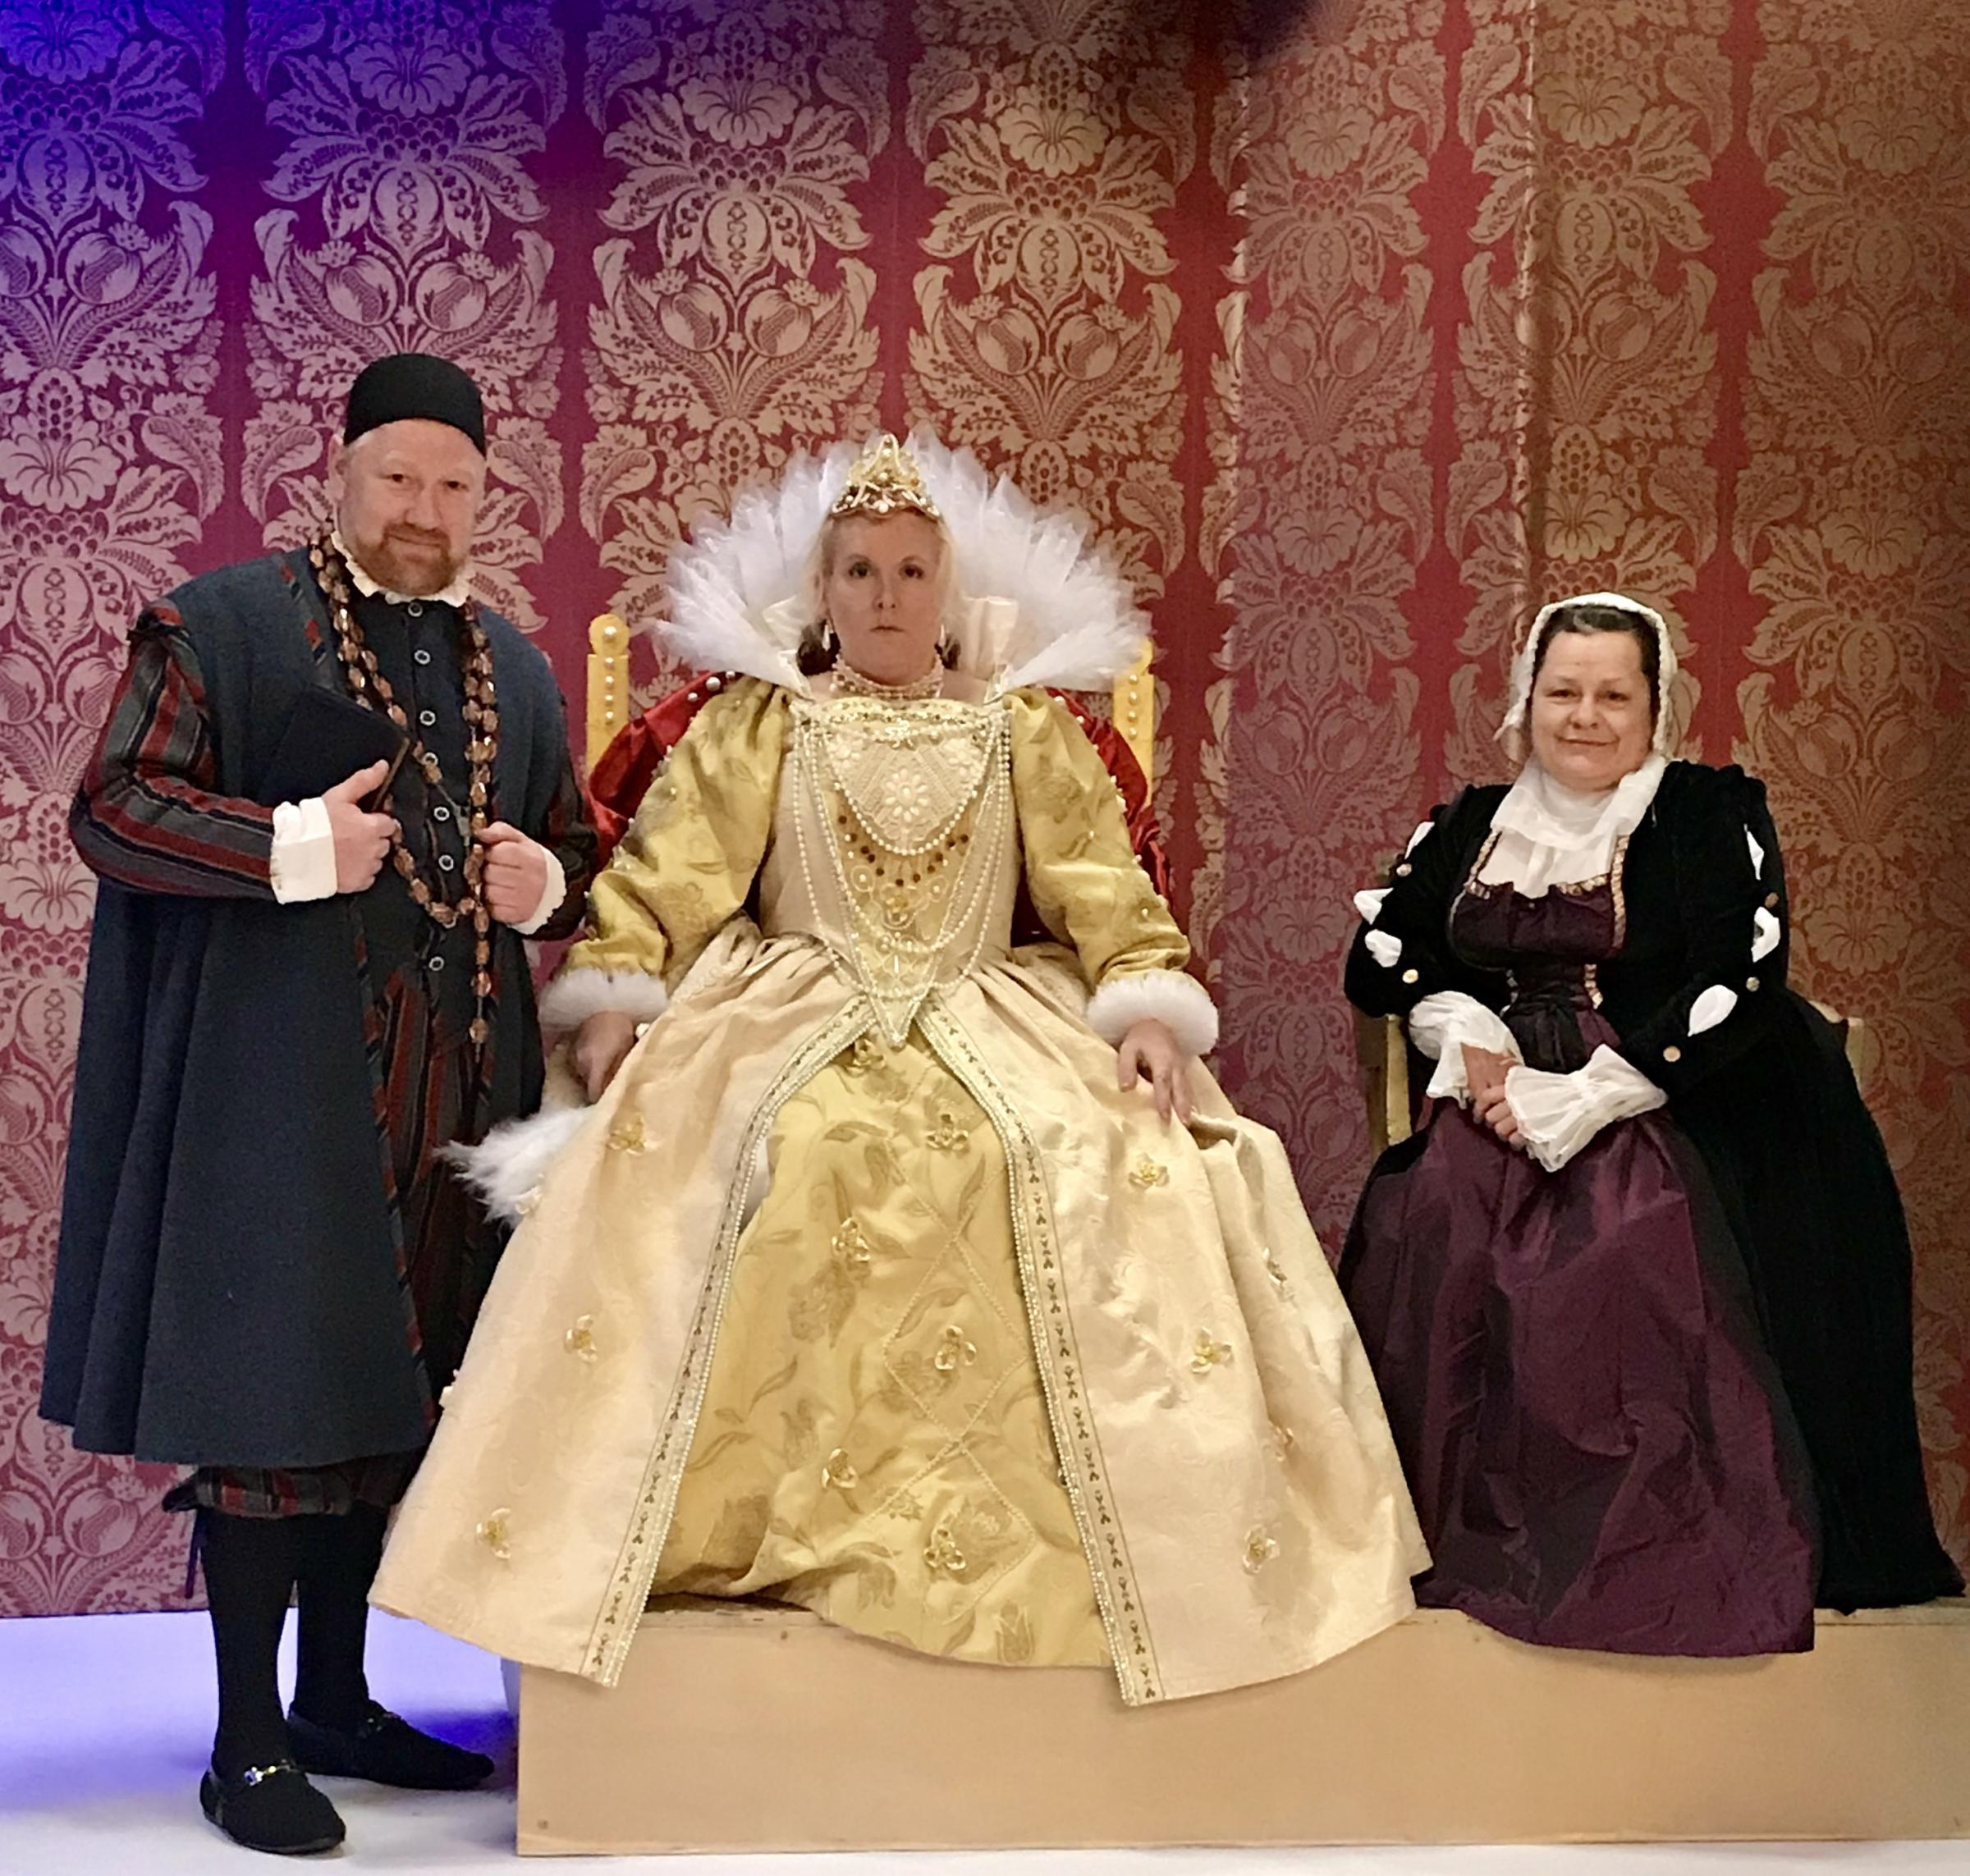 Paul Rendel as Lord Melchett, Jenny Hollinshead as Queenie and Janet Taylor as Nursie